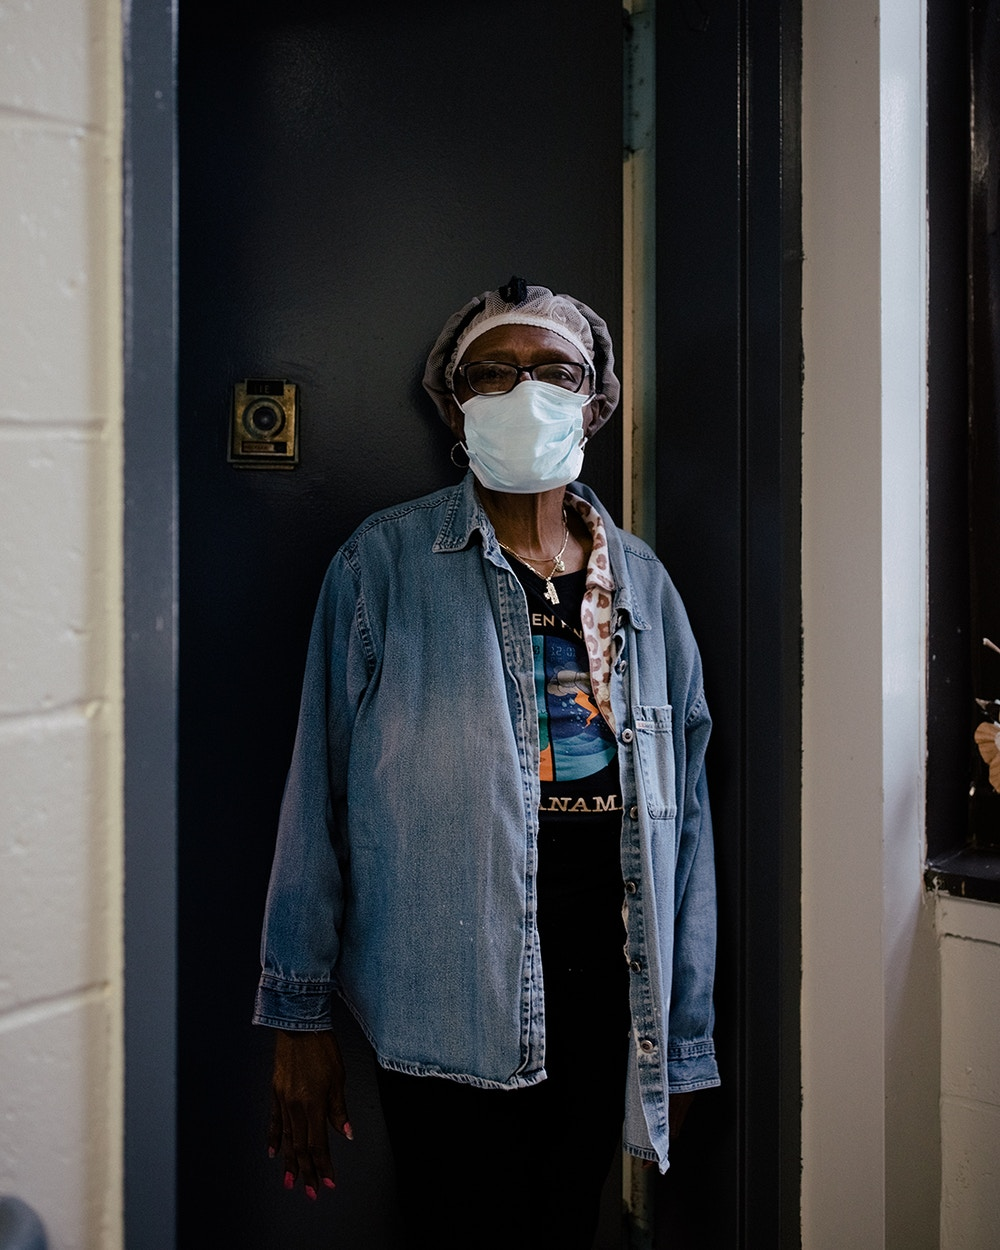 Annie Marcelle, a longtime resident at the Vandalia Avenue Houses, stands for a portrait outside of her 1st-floor residence in the senior-only housing in Canarsie, New York City, New York, U.S., May 29, 2020. José A. Alvarado Jr. for The Intercept